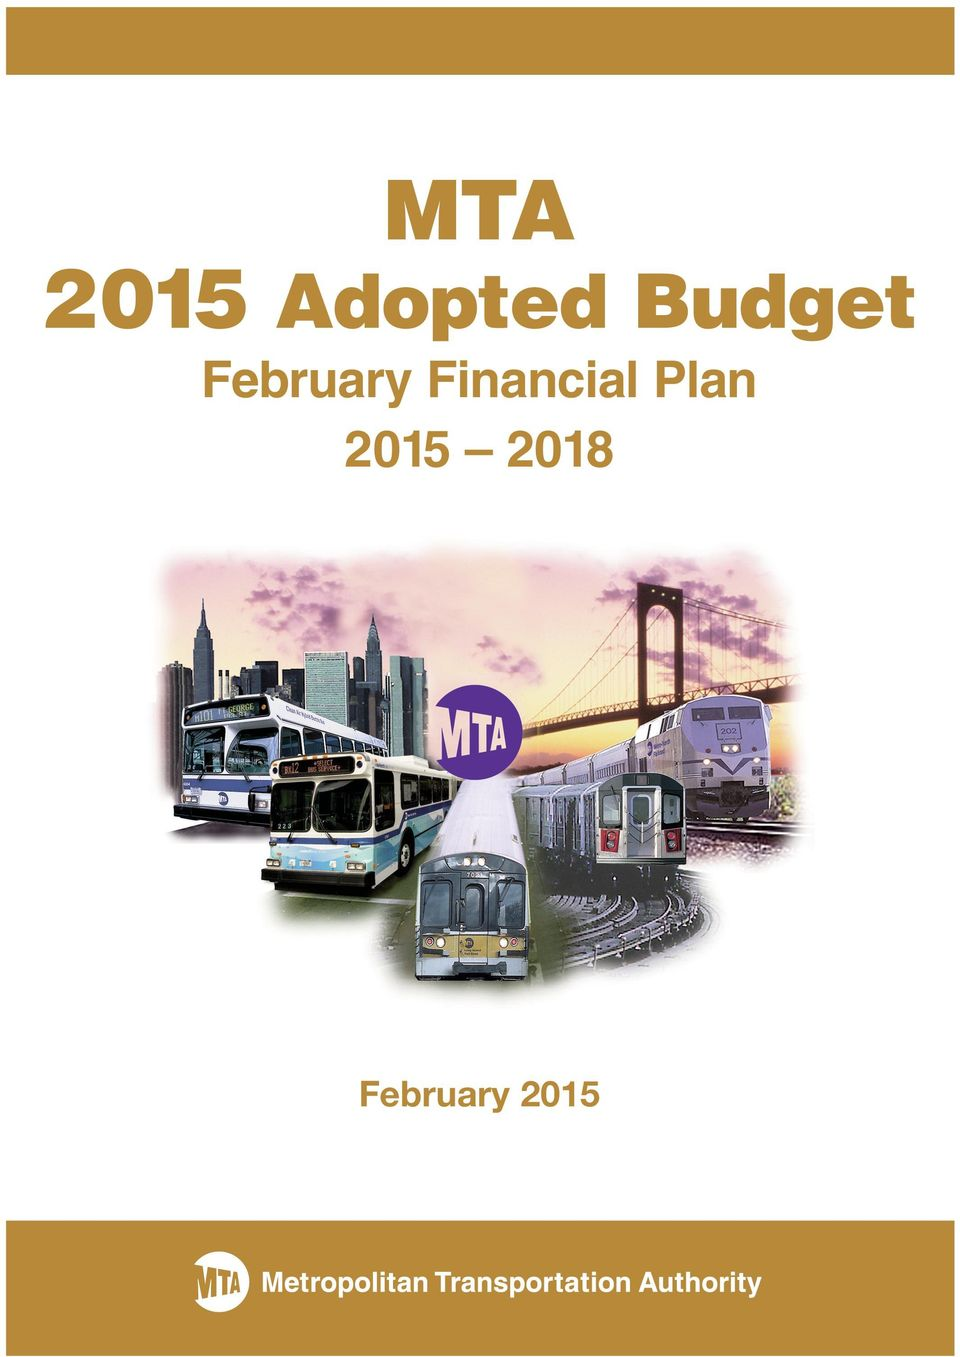 2015 Adopted Budget February